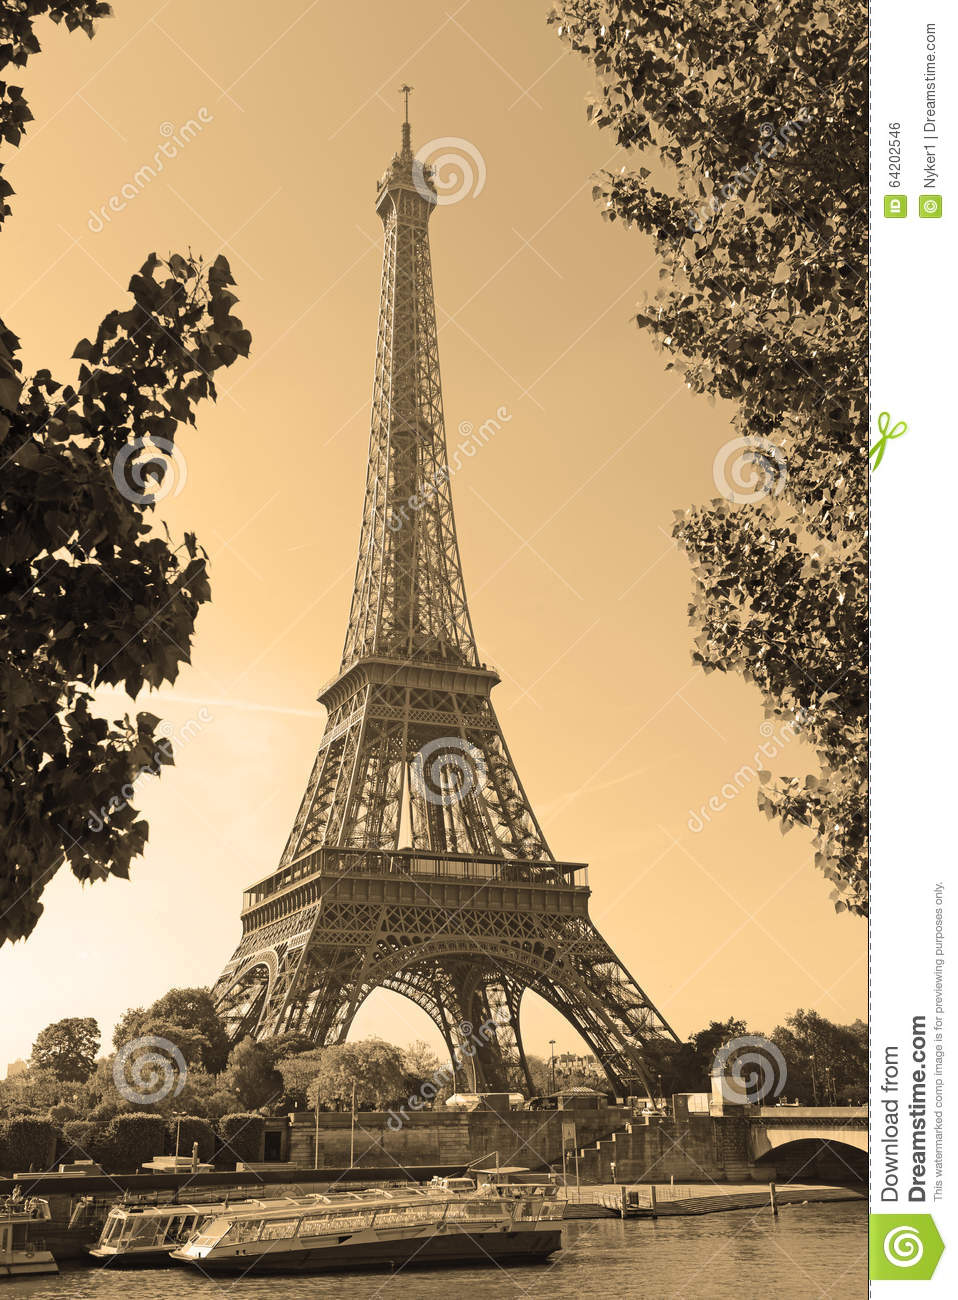 Eiffel Tower, The